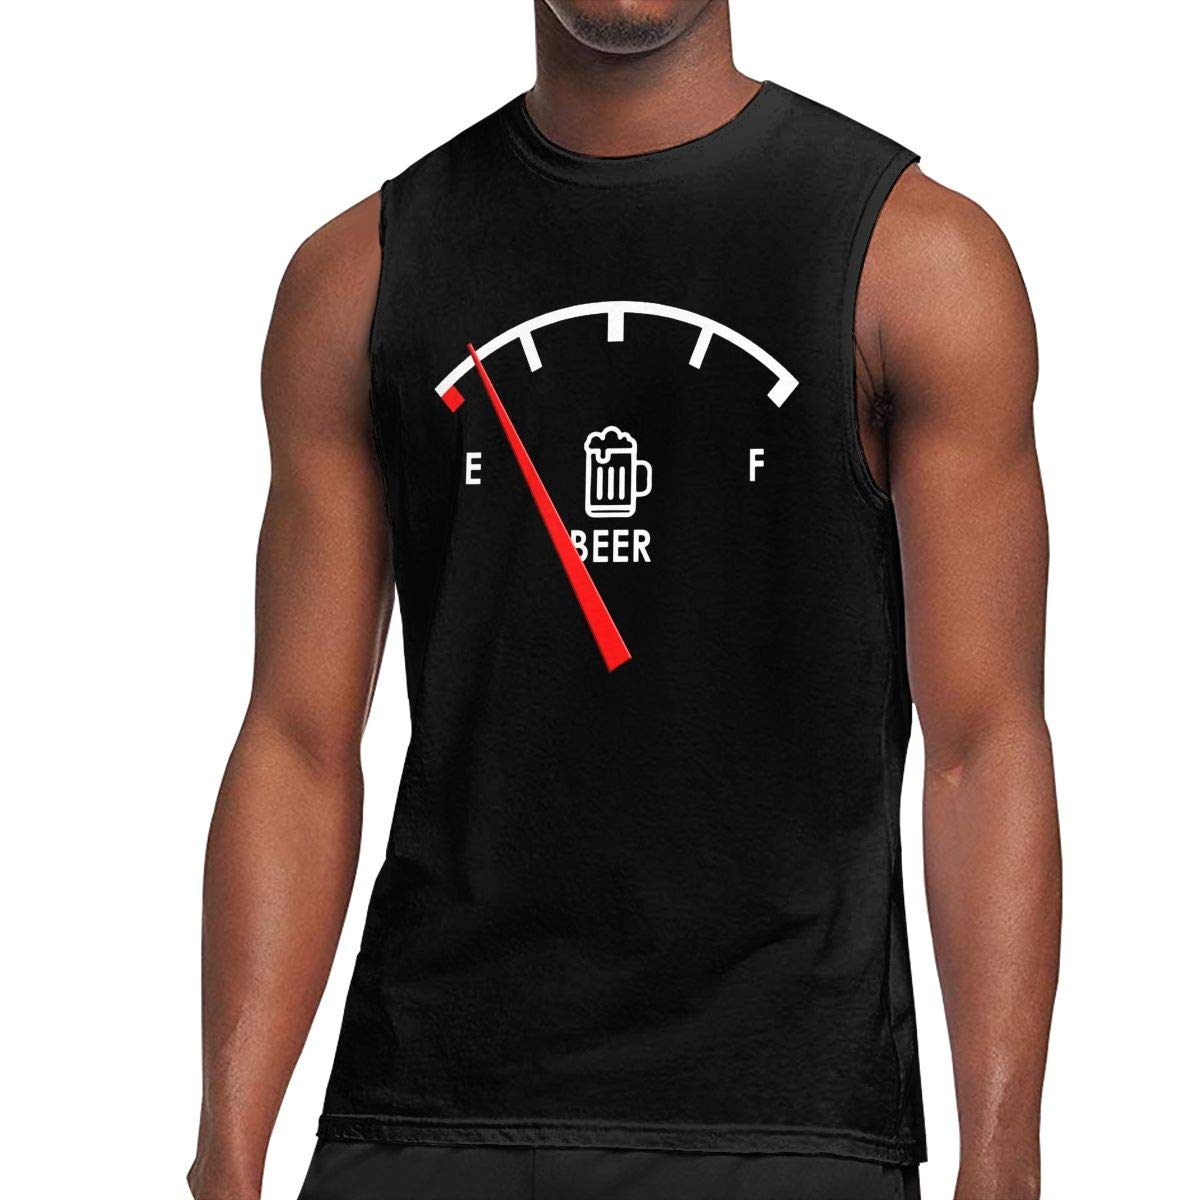 Wpece Almost Out Of Beer S Sleeveless Tshirt Activewear Muscle Tank Tops